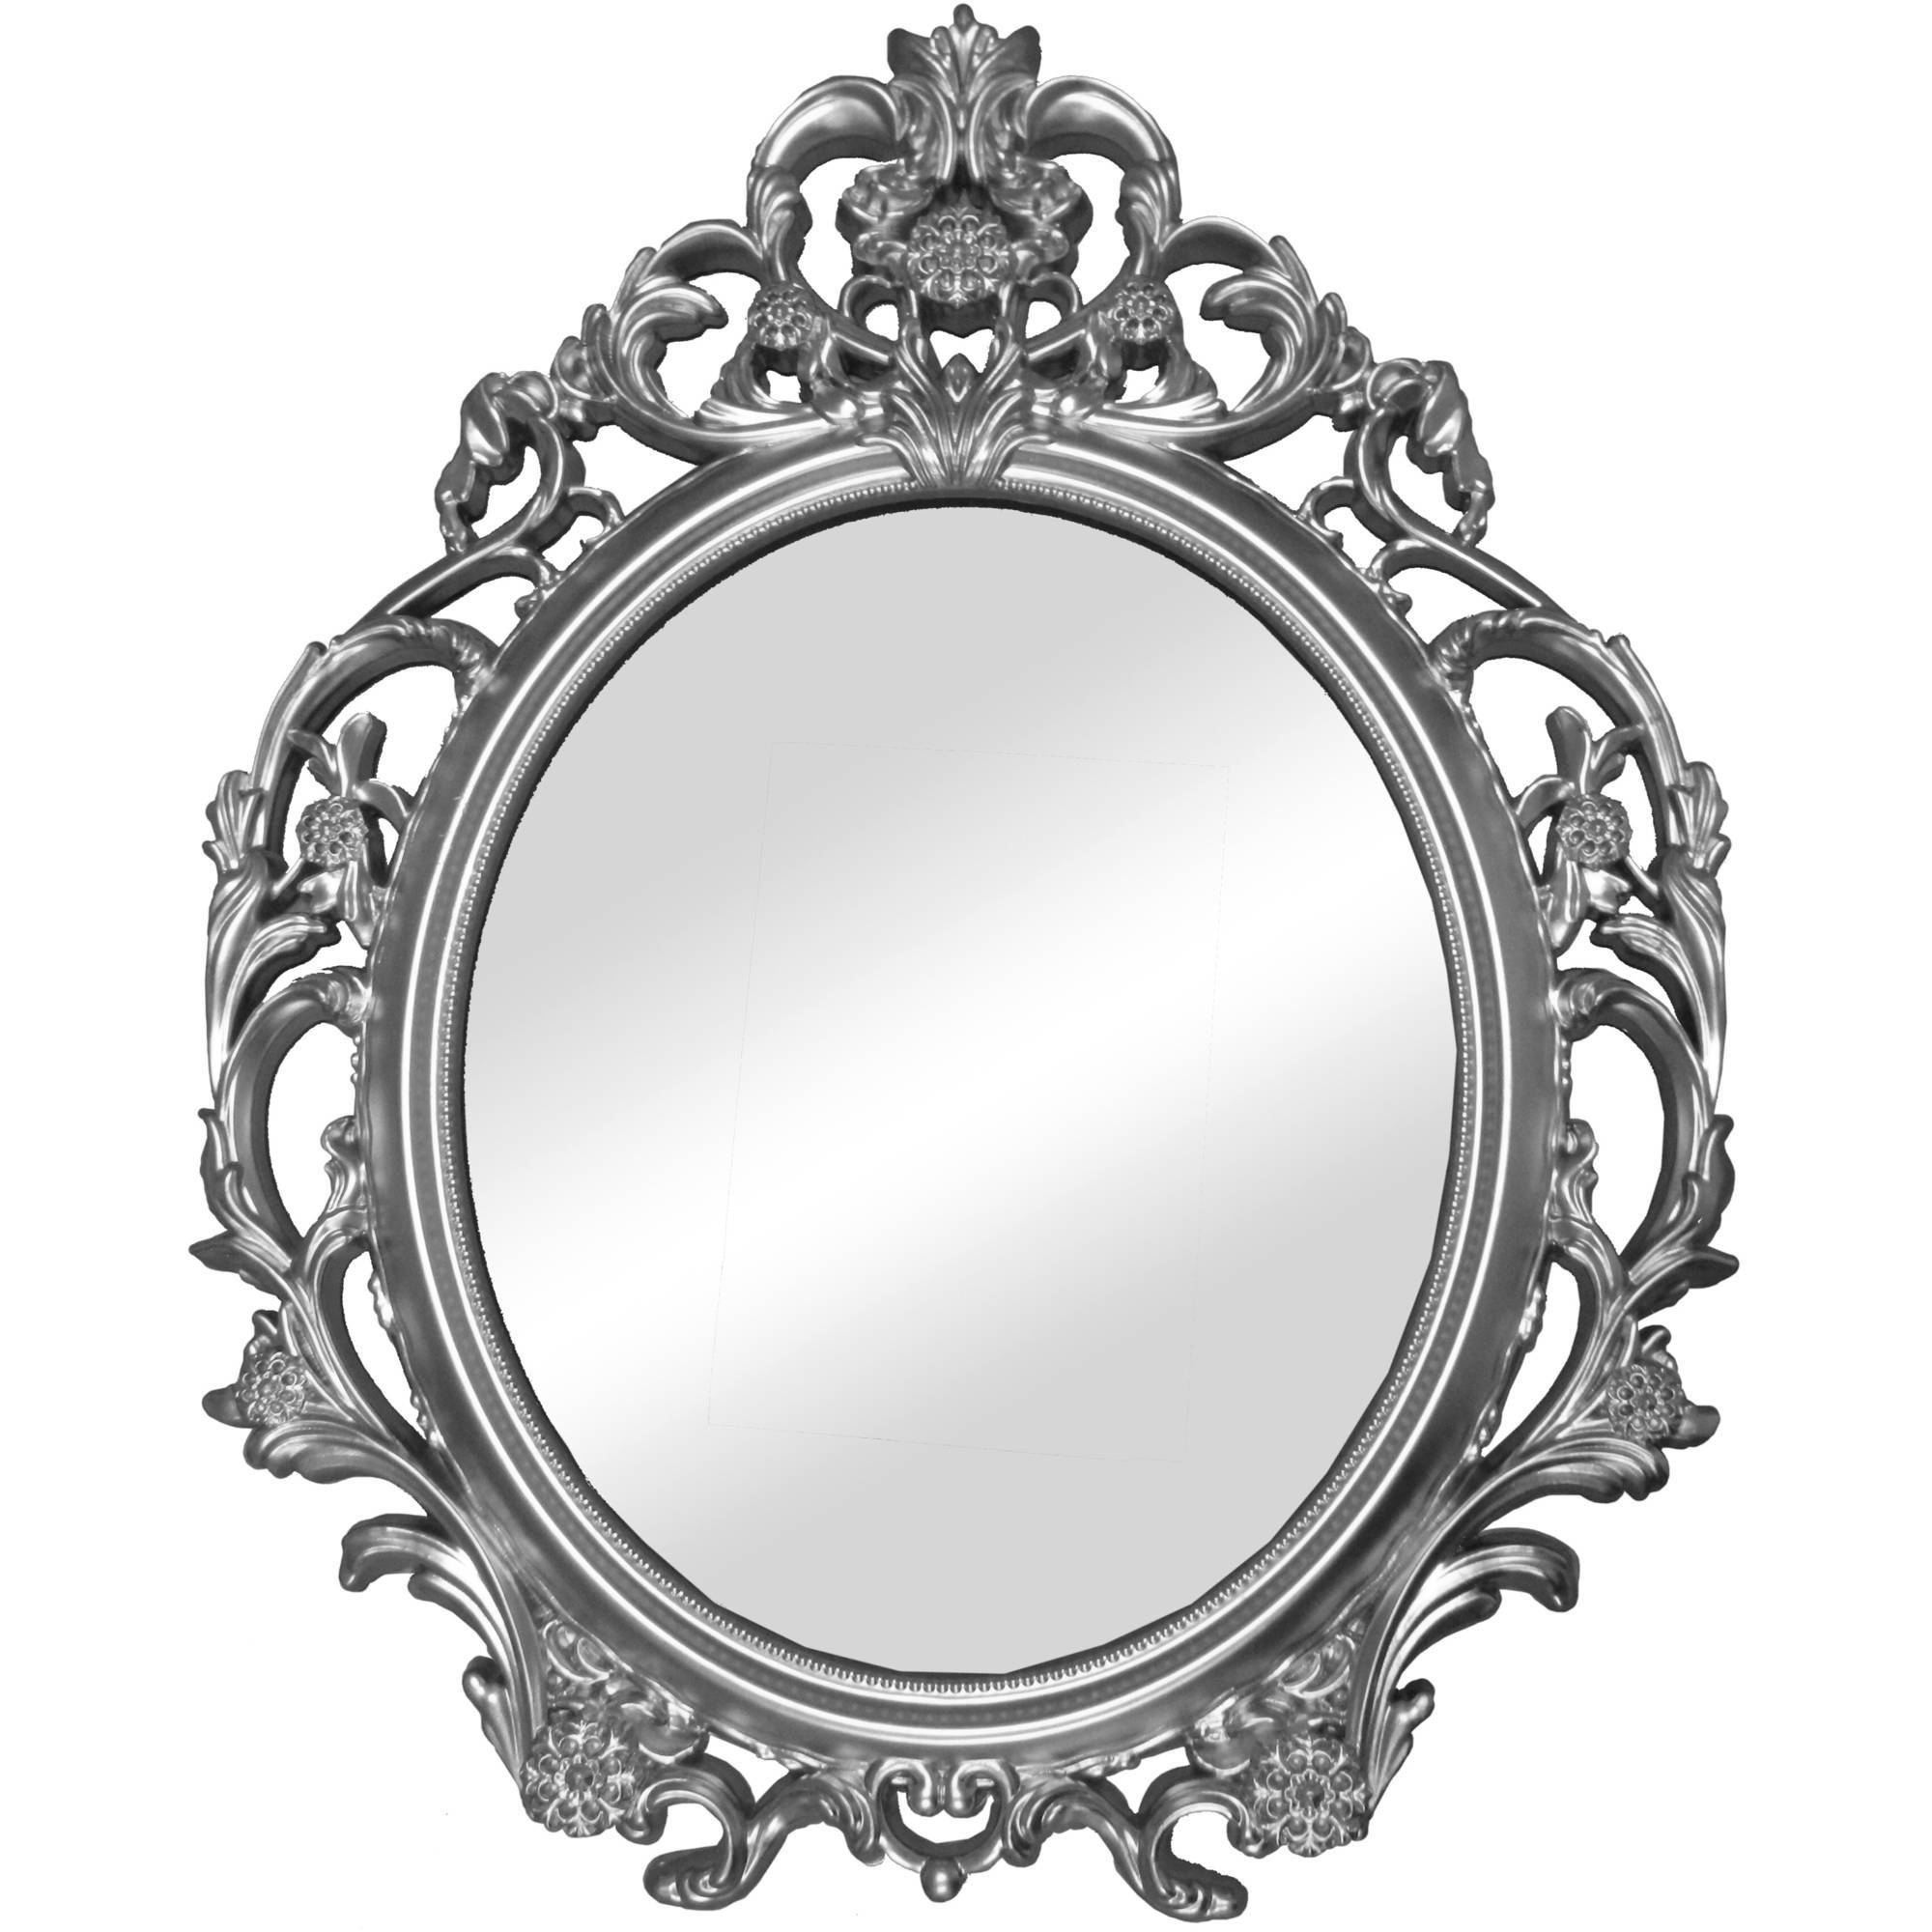 Better Homes And Gardens Baroque Wall Mirror – Walmart Inside Black Baroque Mirrors (View 10 of 25)